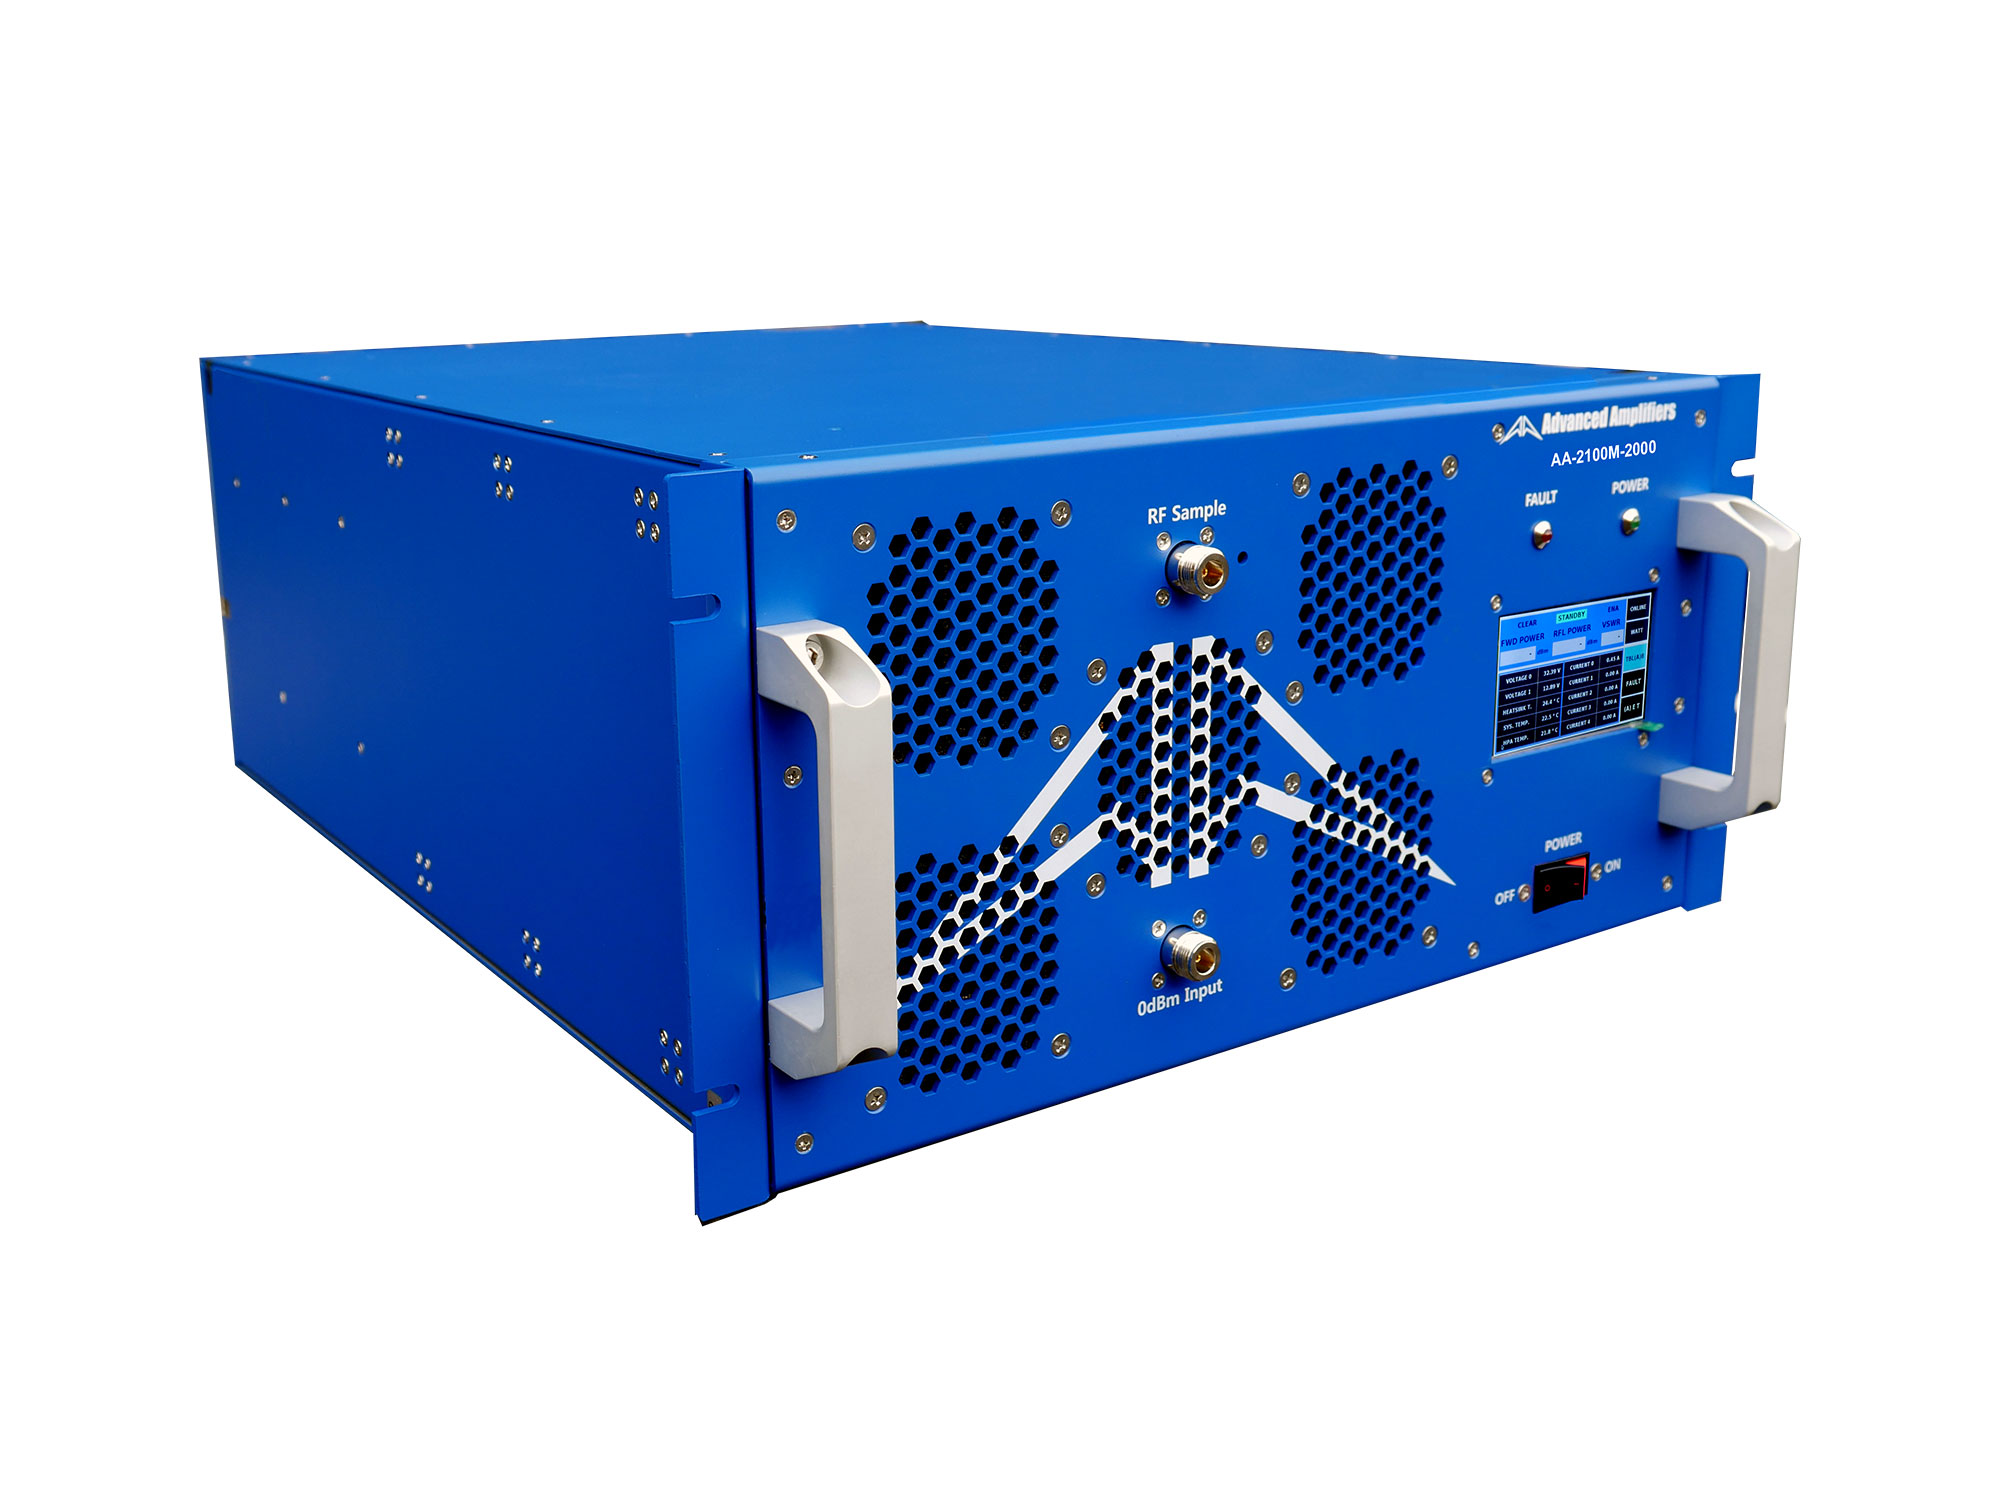 Advanced Amplifiers AA-2100M-2000 Solid State Amplifier | 2 - 100MHz, 2000W